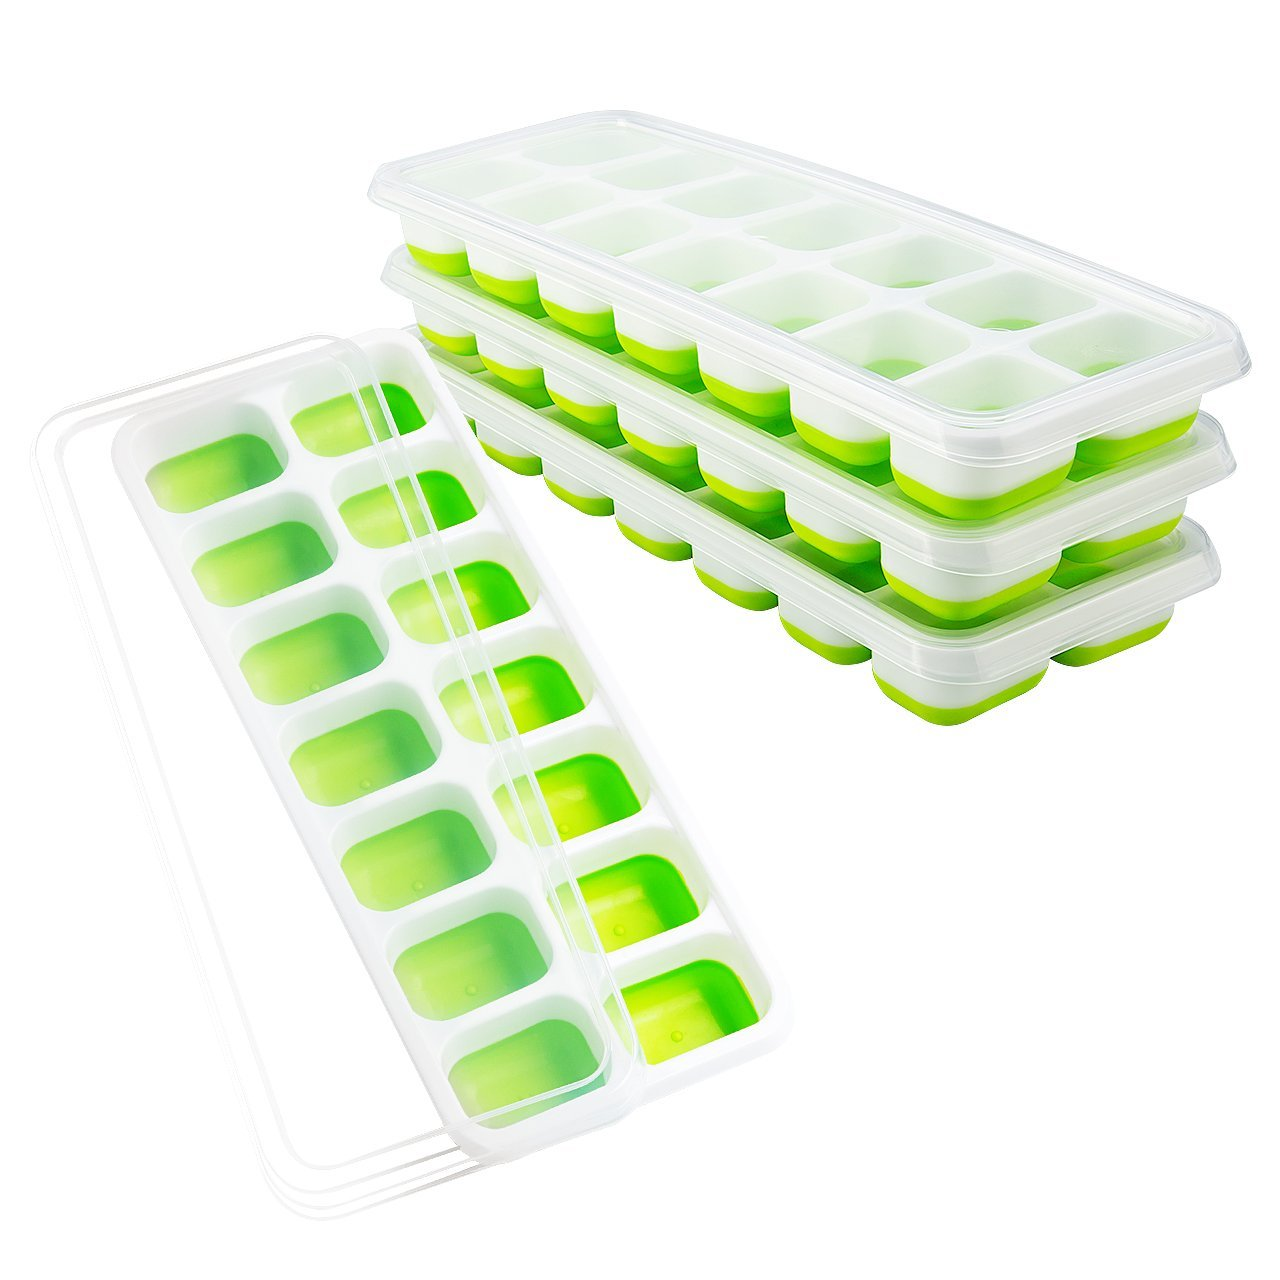 OMorc Ice Cube Trays Easy-Release, 14 Ice Cubes Molds (Pack of 4) and Spill-Resistant Lid Included, LFGB Certified Easy to Use and Dishwasher Safe